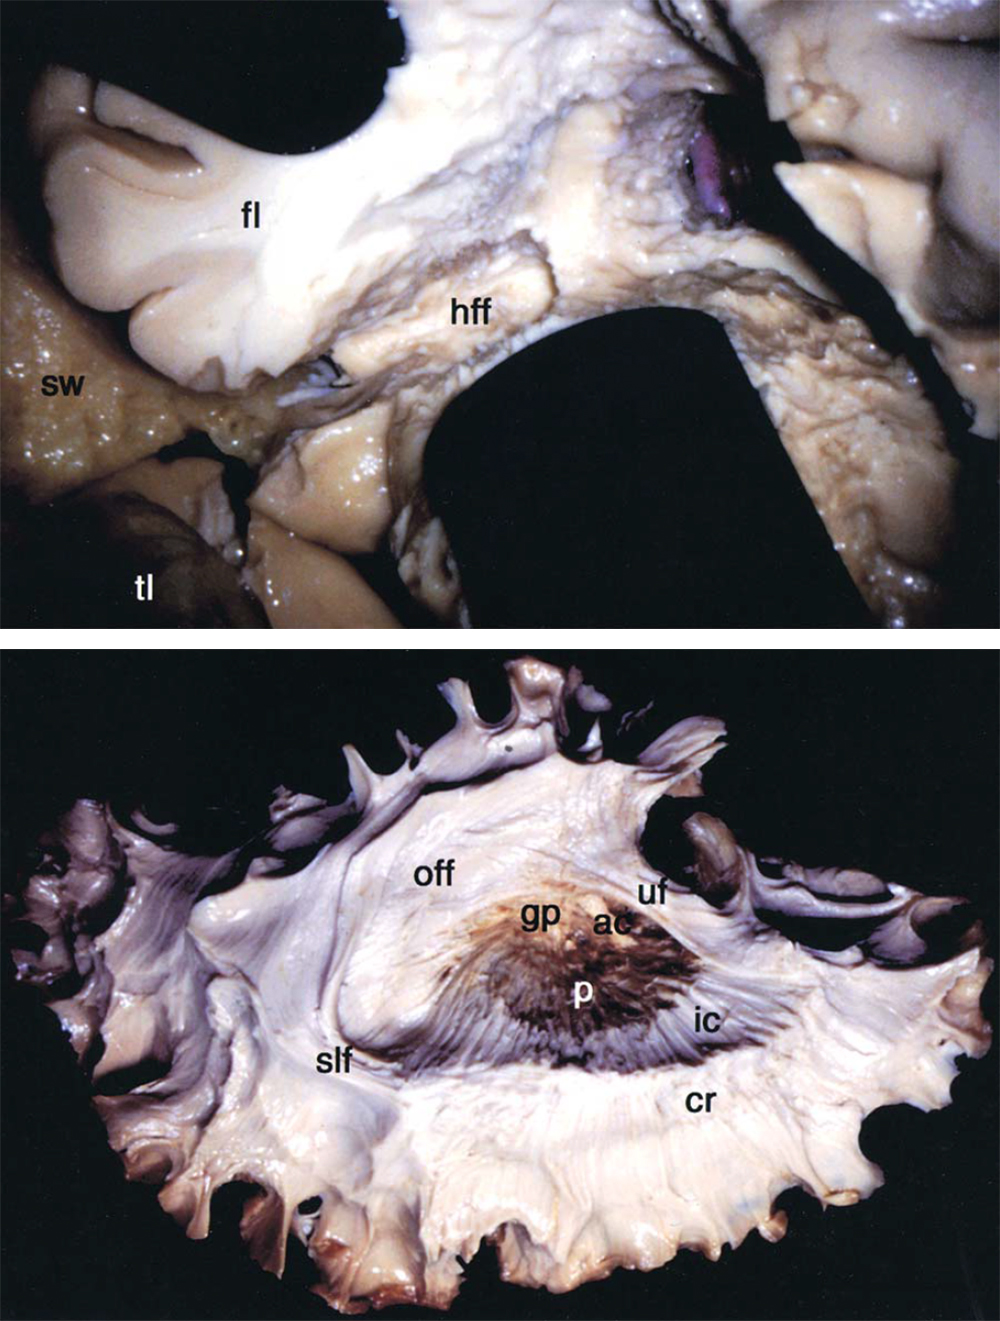 Figure 4: The horizontal frontal fibers (hff) are transected via continuation of the subcortical dissection starting from the point where the genu callosotomy left off and following the outline of the sphenoid wing (top photo). The fiber dissection method demonstrates that the horizontal frontal fibers include the occipitofrontal fasciculus (off) and uncinate fasciculus (uf)(bottom photo). ac = anterior commissure; cr = corona radiata; gp = globus pallidus; p = putamen; sw = sphenoid wing (images used with permission from Morino et al. Anatomical analysis of different hemispherotomy procedures based on dissection of cadaveric brains.  J Neurosurg . 2002;97: 423-431.)